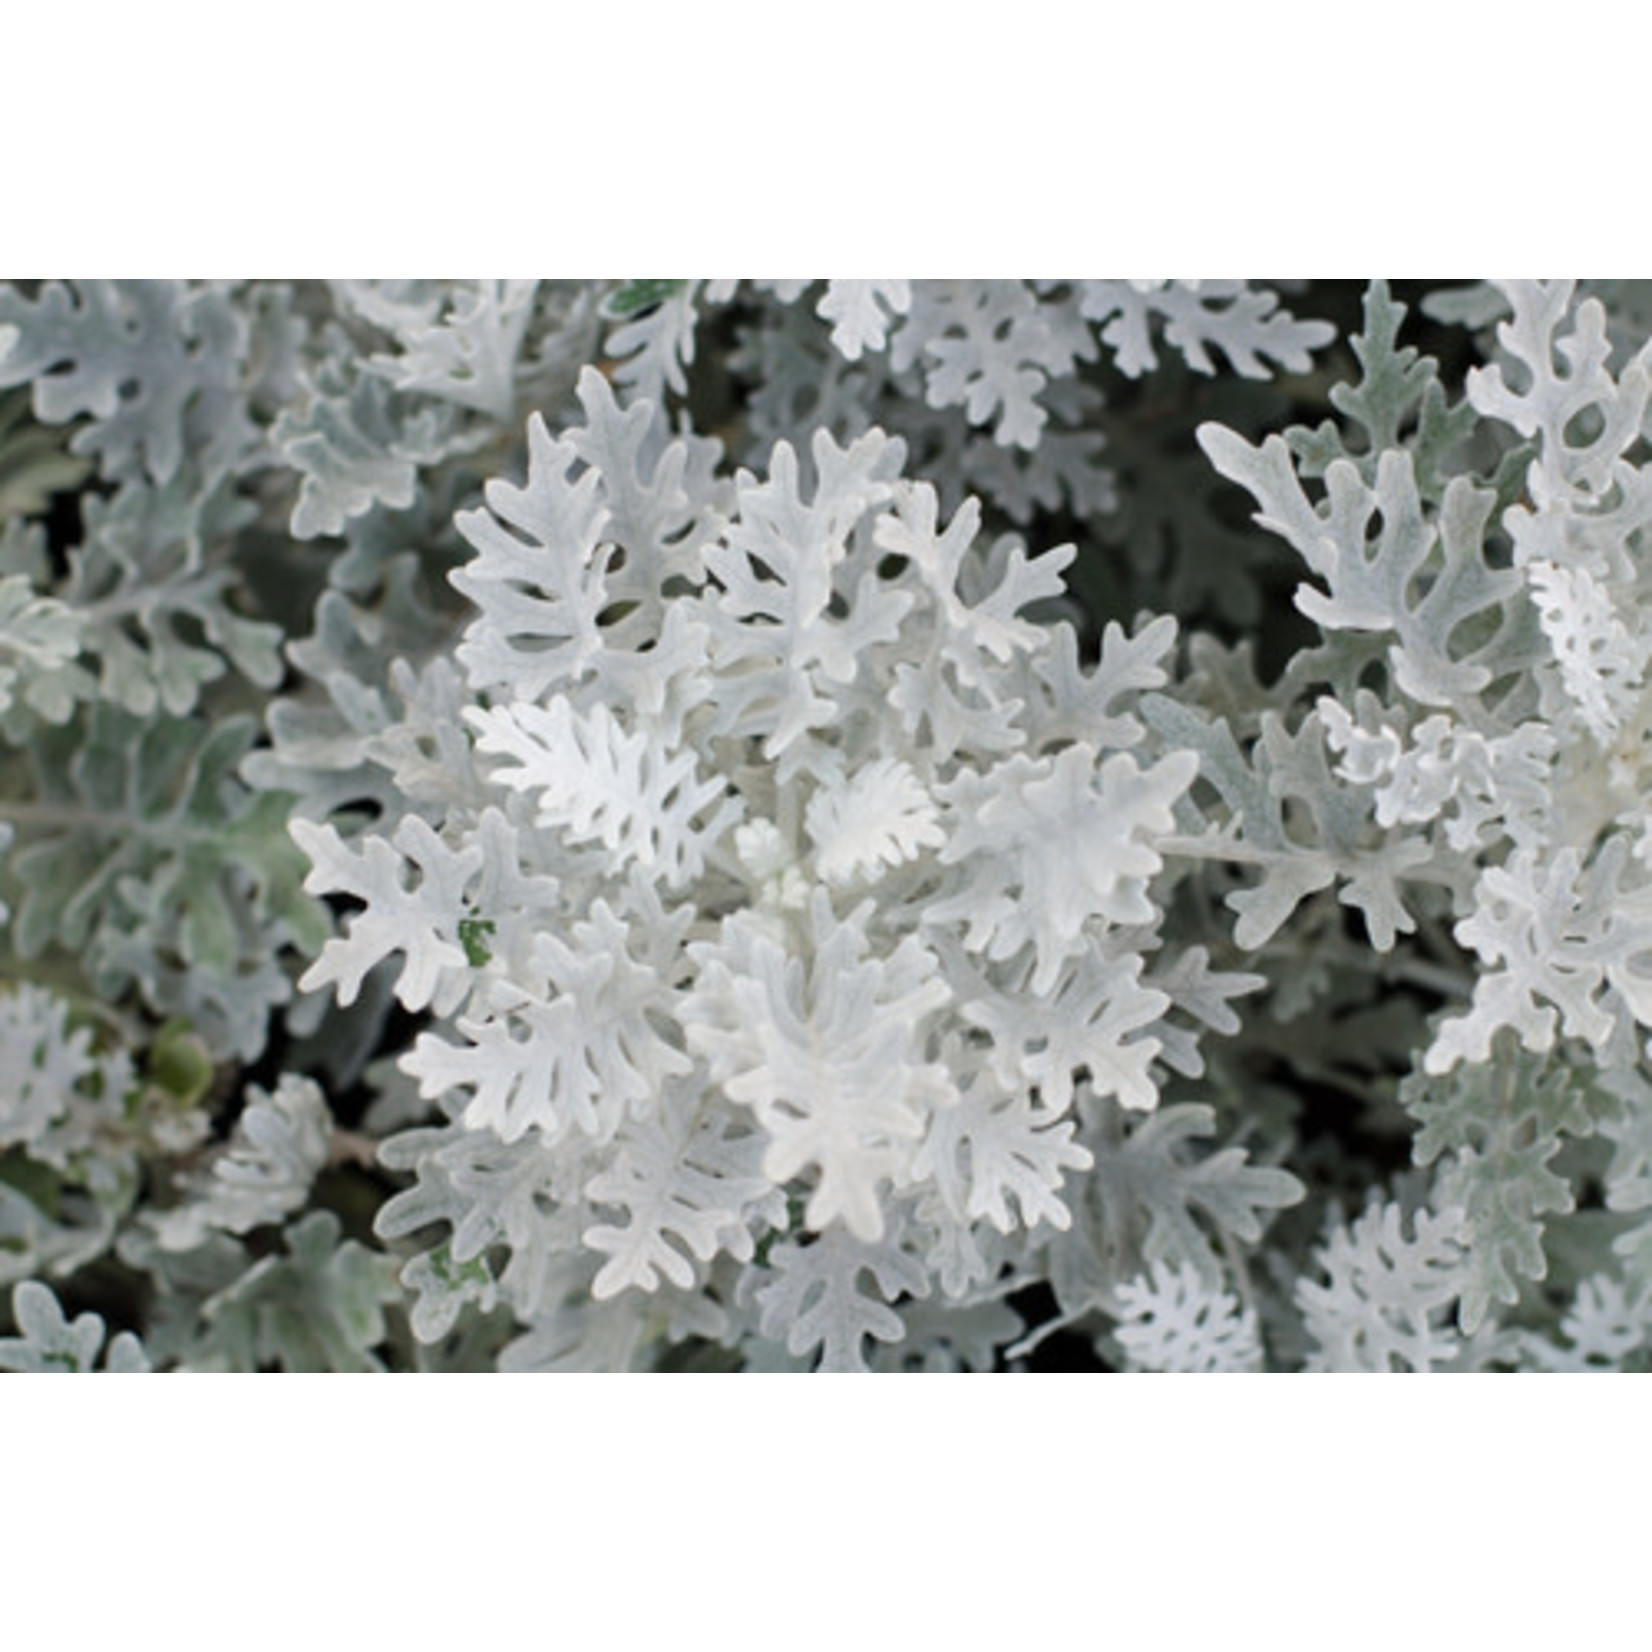 Dusty Miller - 4 Cell Pack